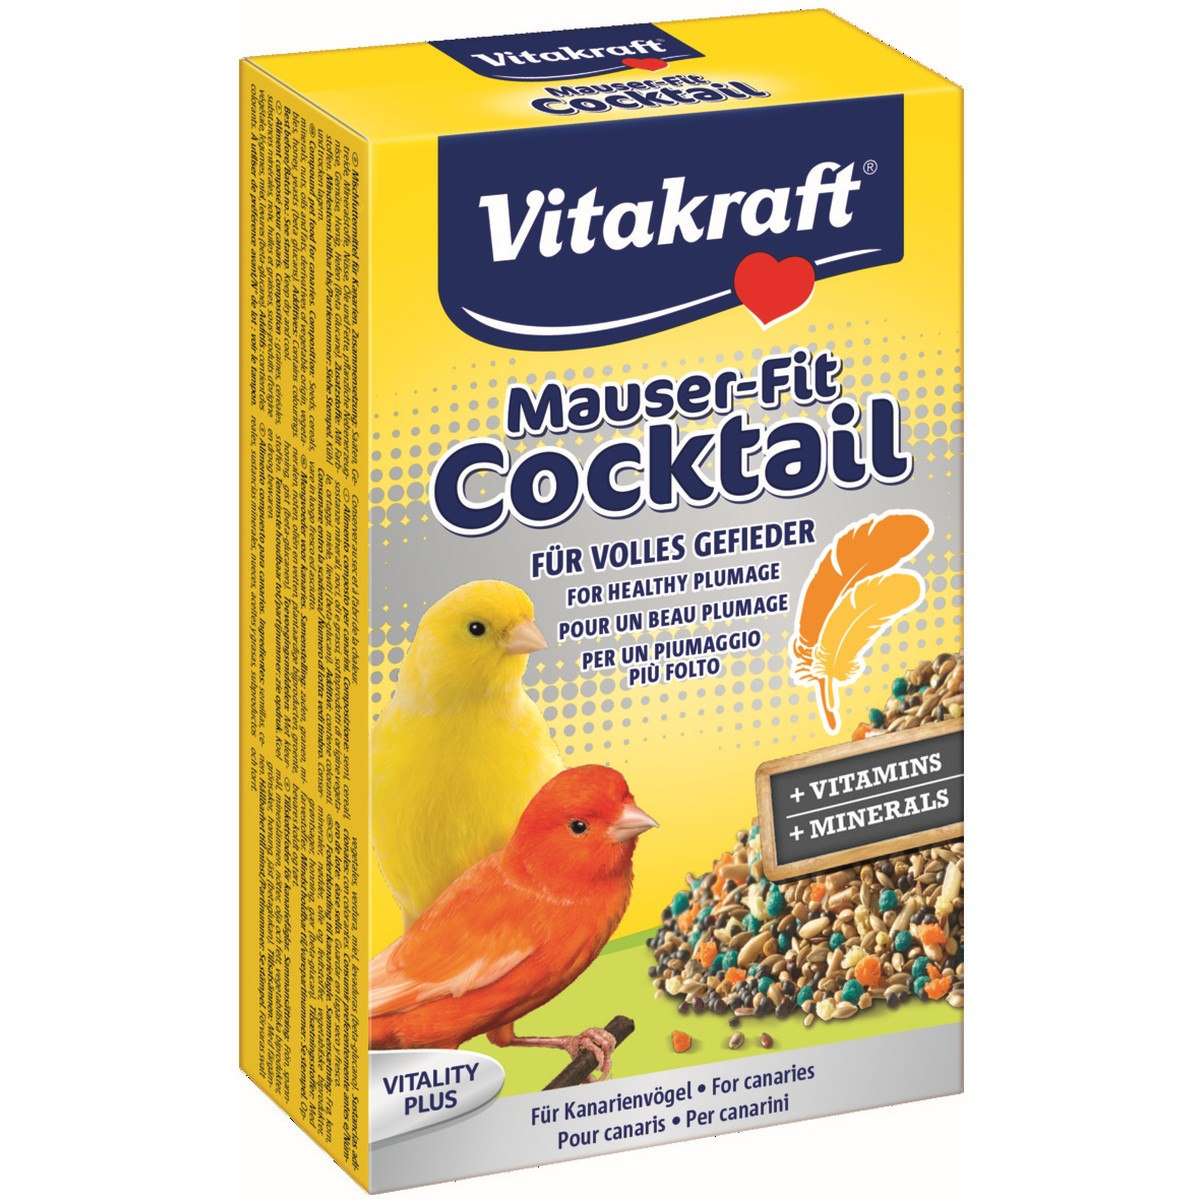 VITAKRAFT - Kanariecocktail - 200 Gram